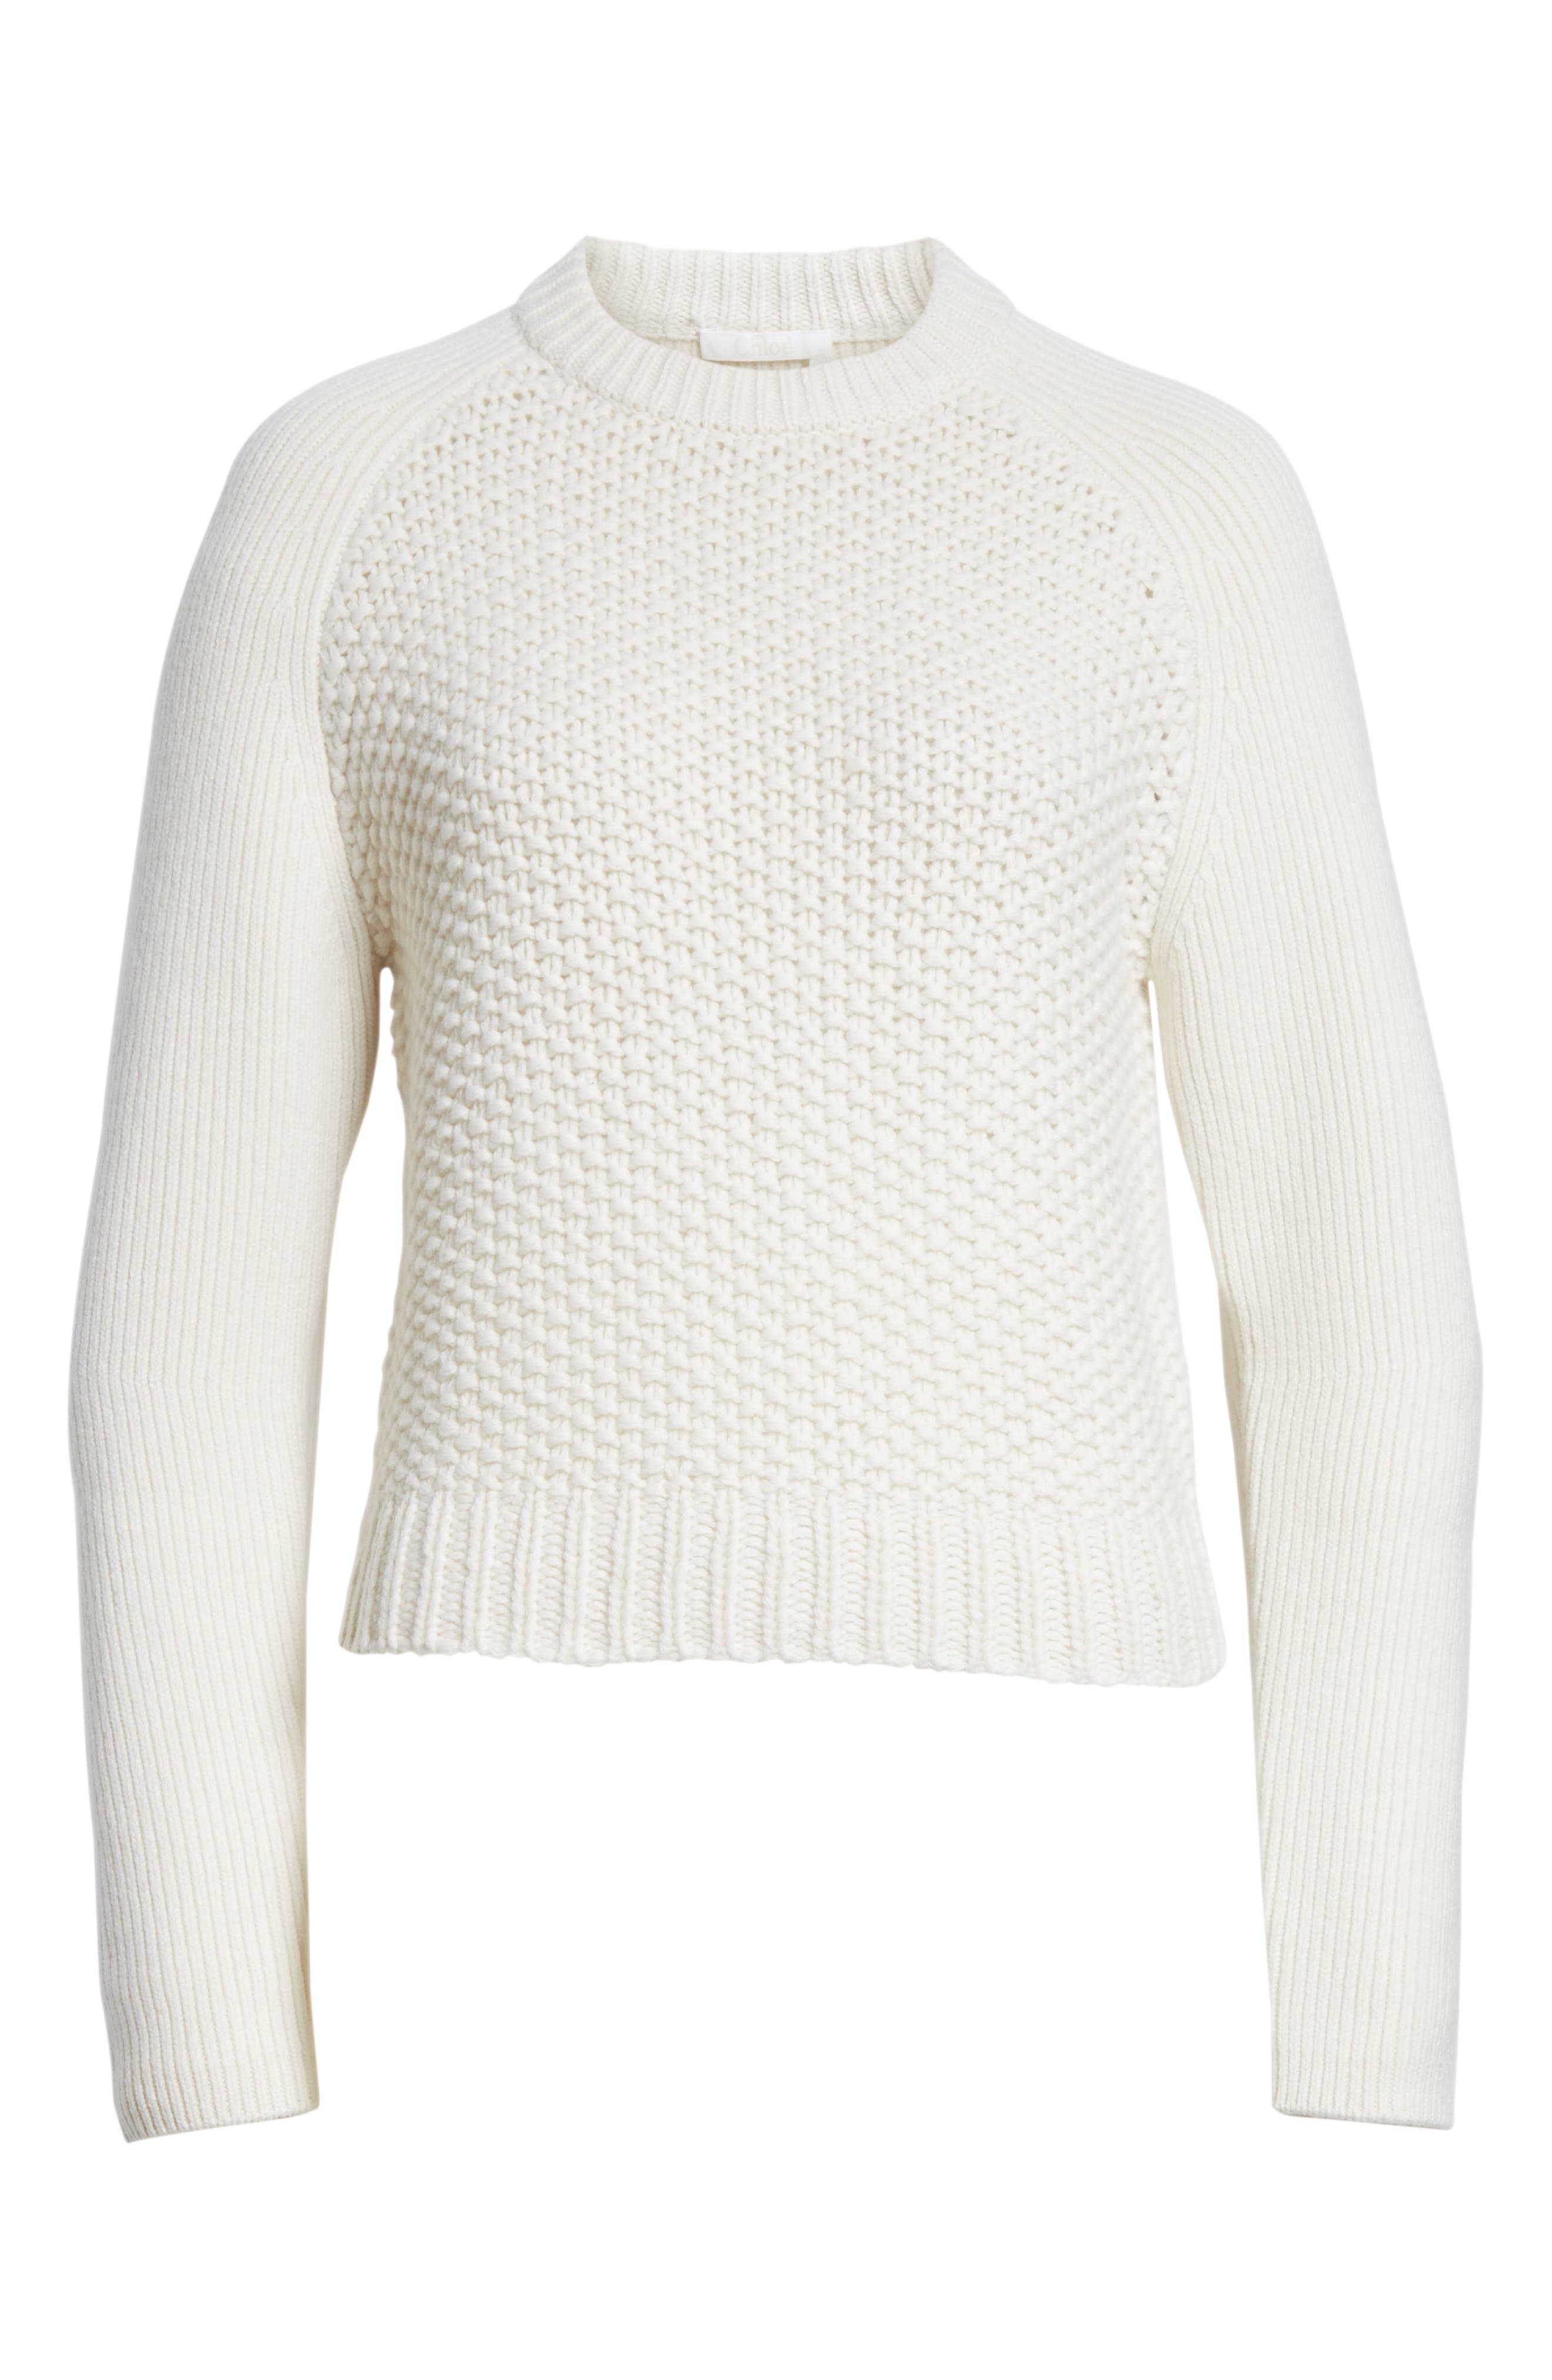 Mixed Knit Wool & Cashmere Blend Sweater,                             Alternate thumbnail 6, color,                             PRISTINE WHITE